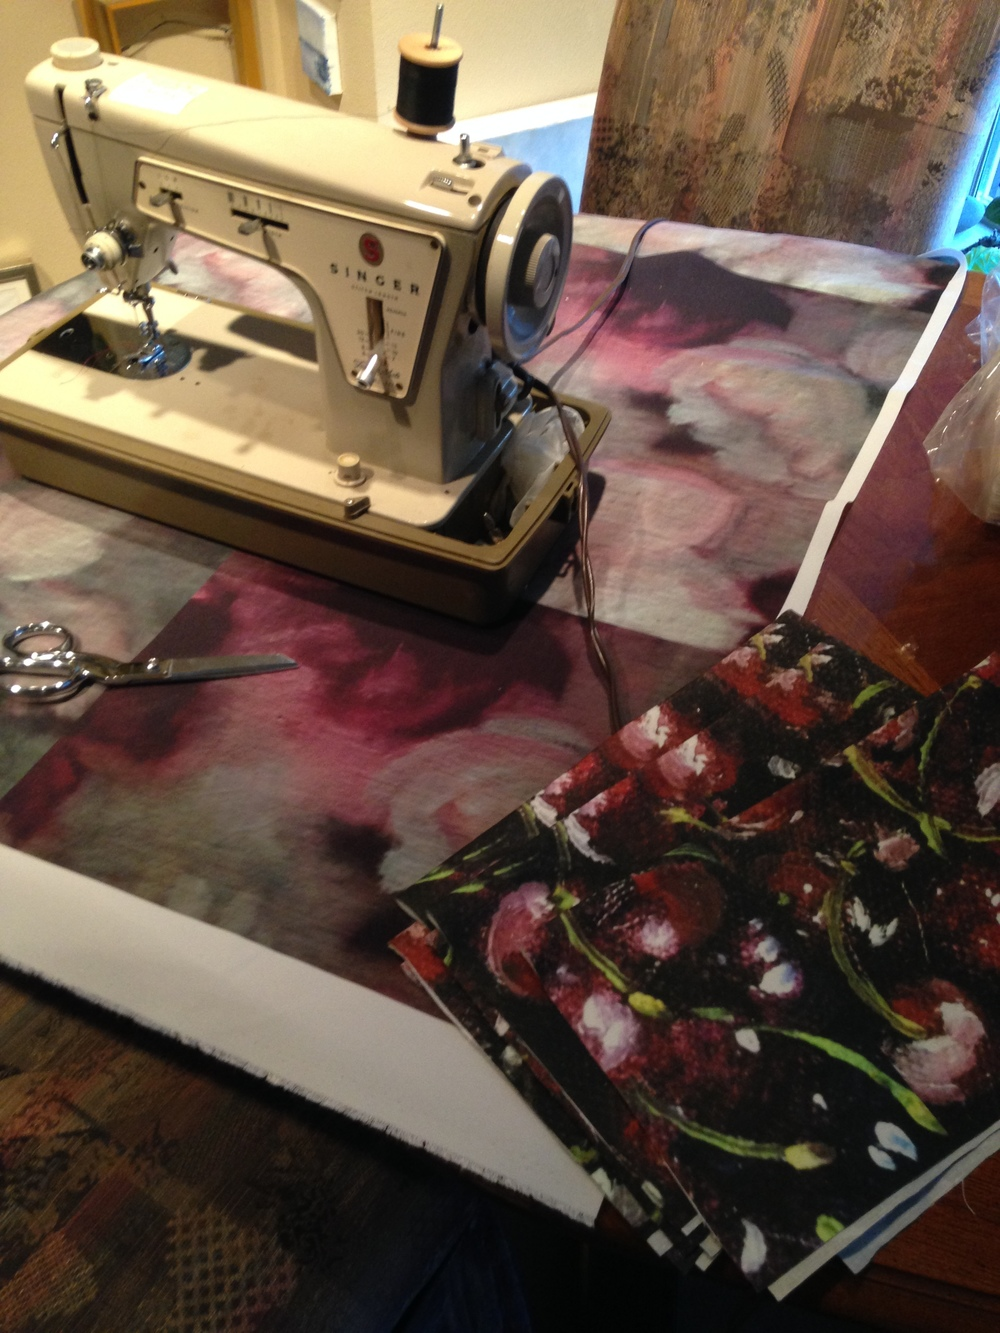 """I will make kitchen towels using my Grandmother Edythe's Singer sewing machine of fabric (cotton/linen) made from my """"cherries"""" painting."""